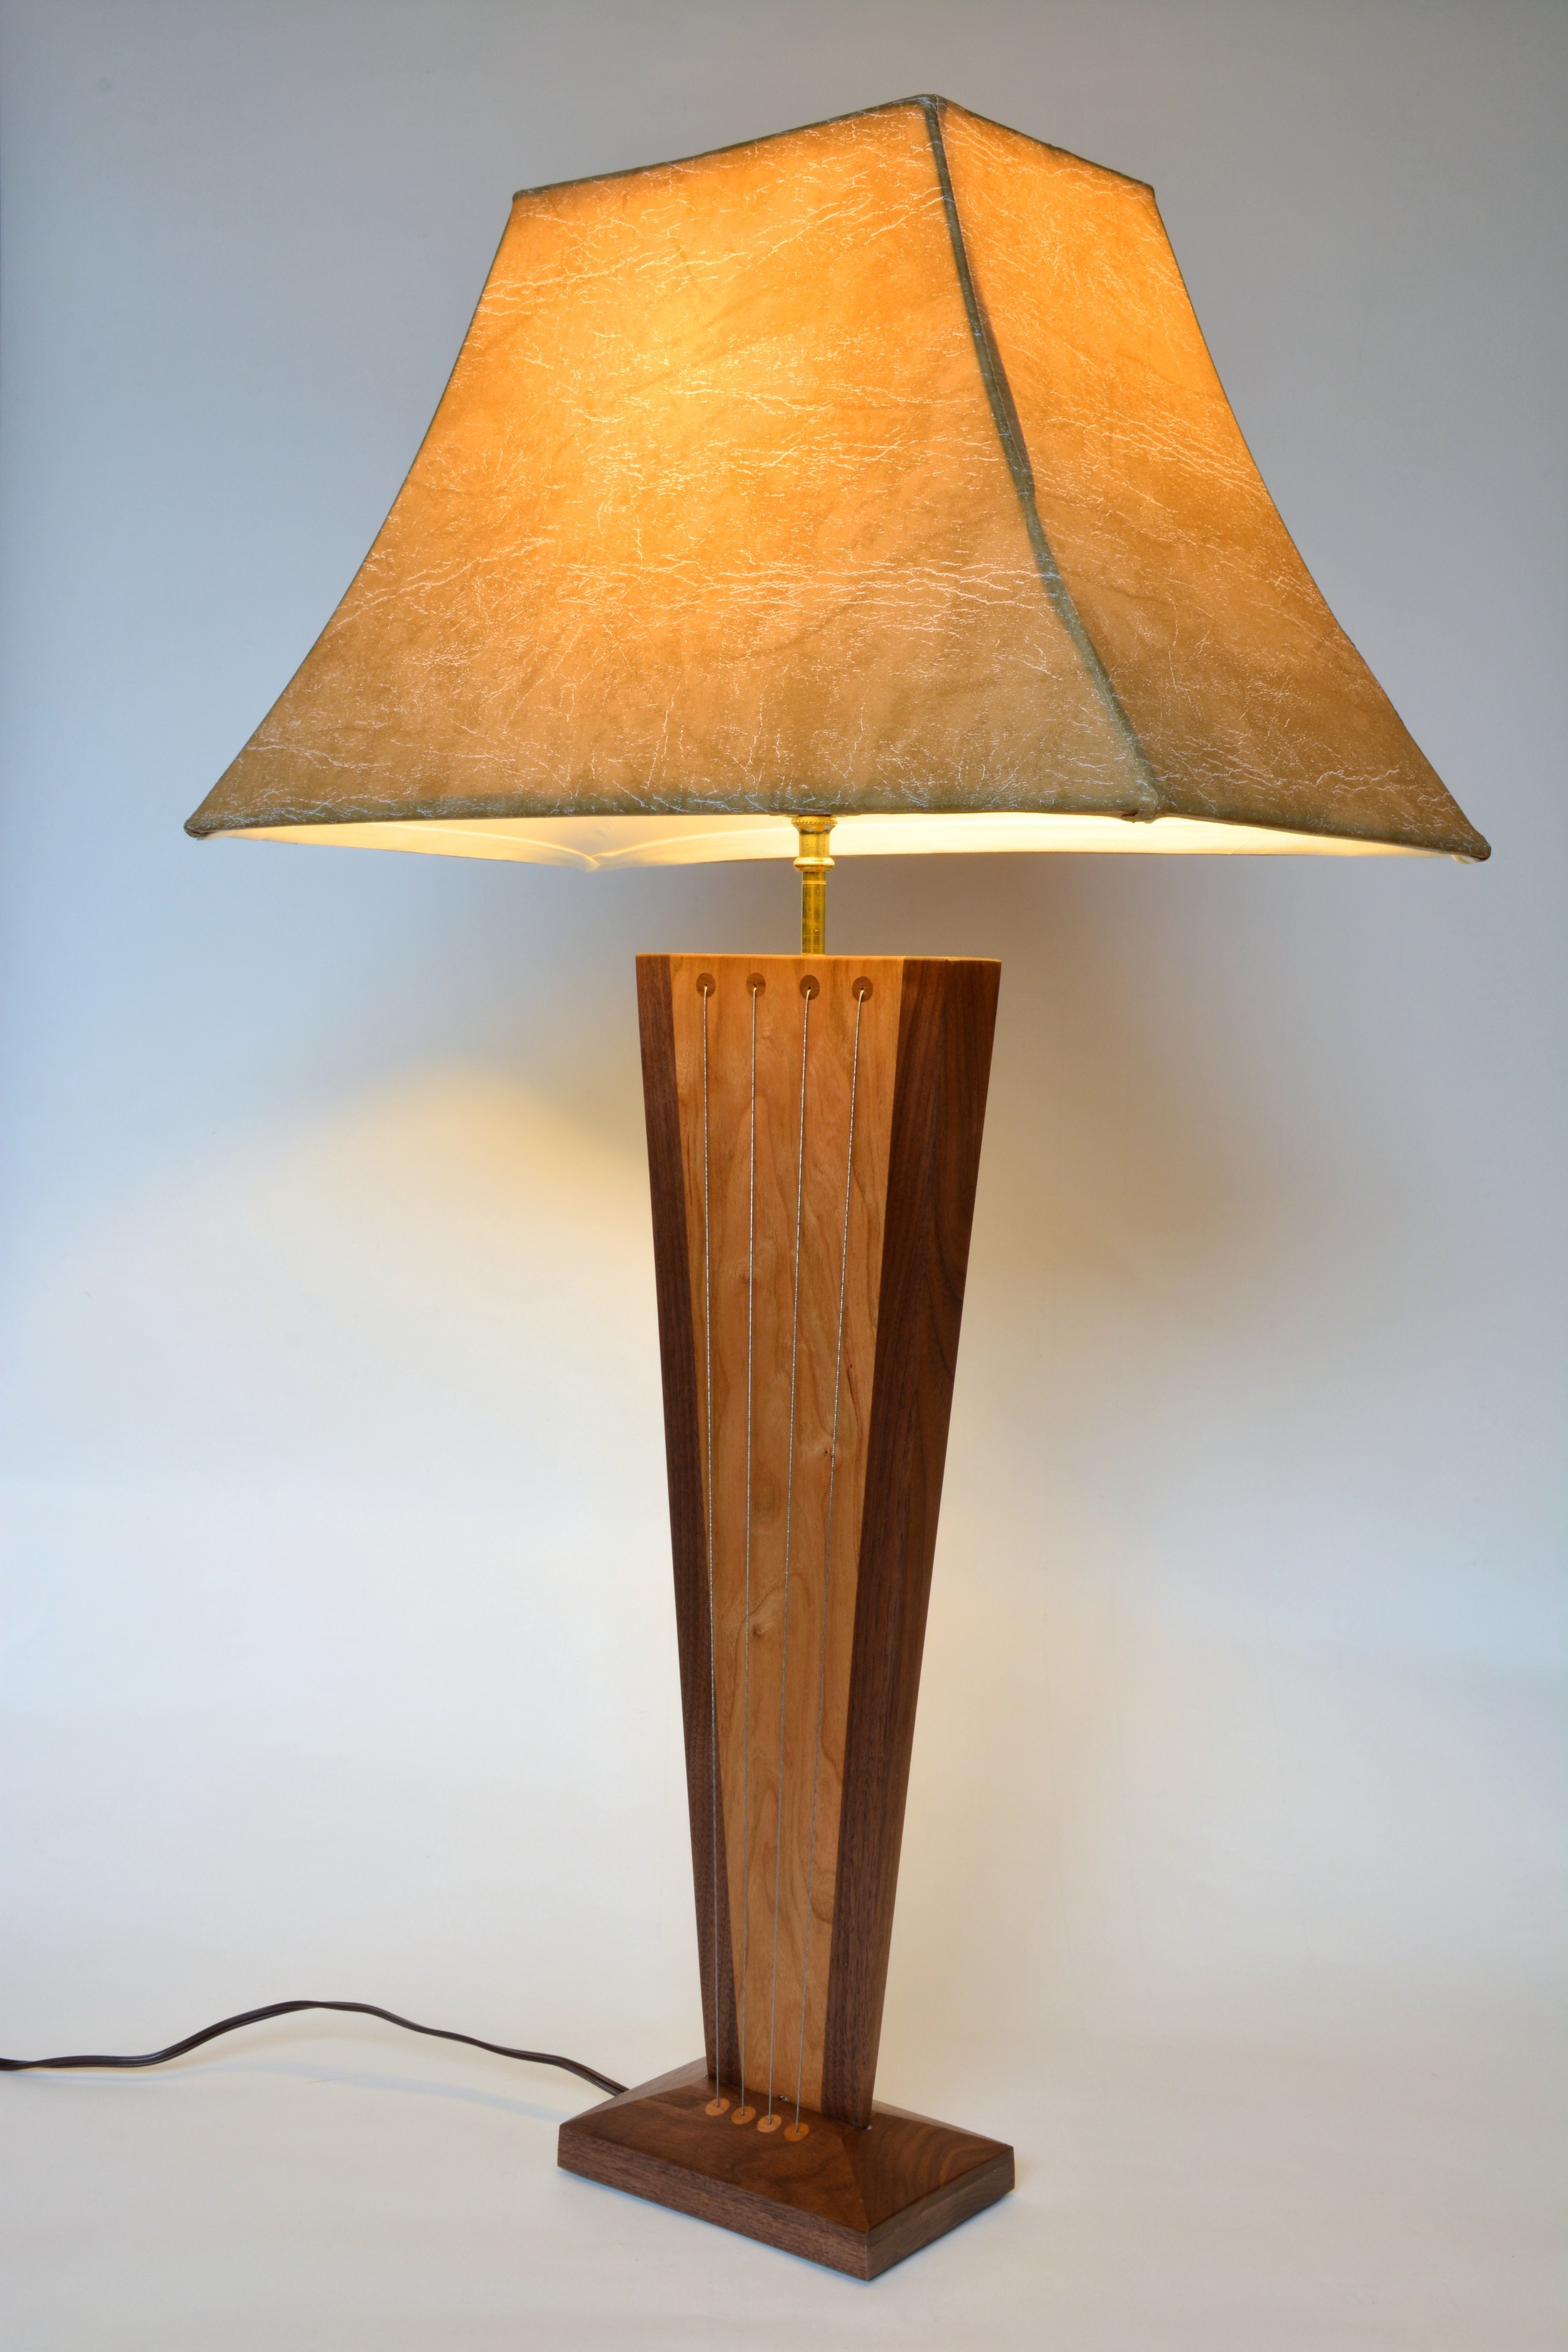 Balance Table Lamp by Robby Cuthbert - walnut and cherry modern lamp